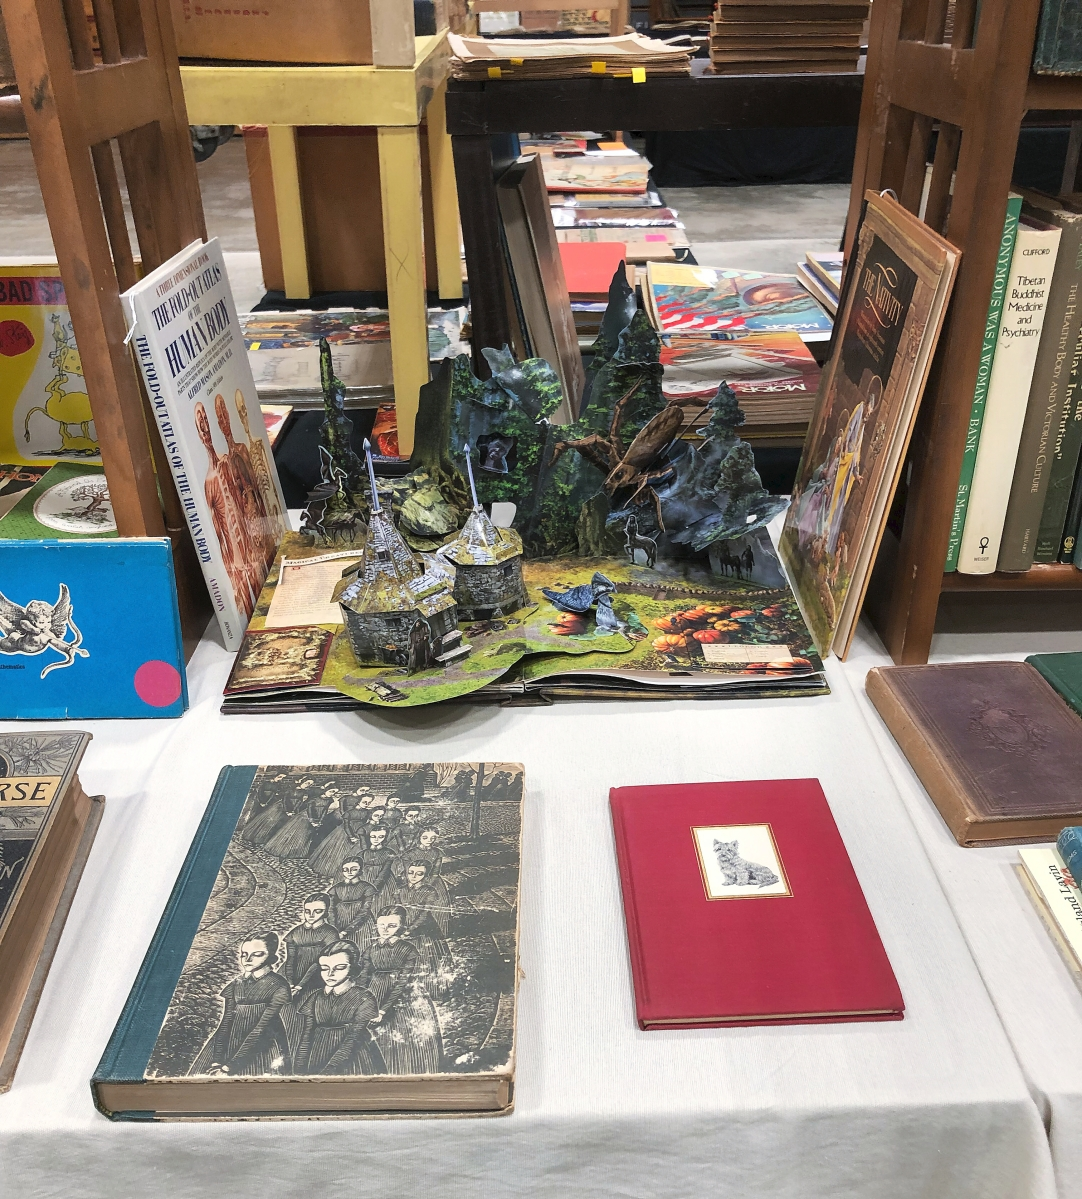 The Book Augur, Newburyport, Mass., brought a selection of local history titles, along with books on architecture. He also had a Harry Potter pop-up.